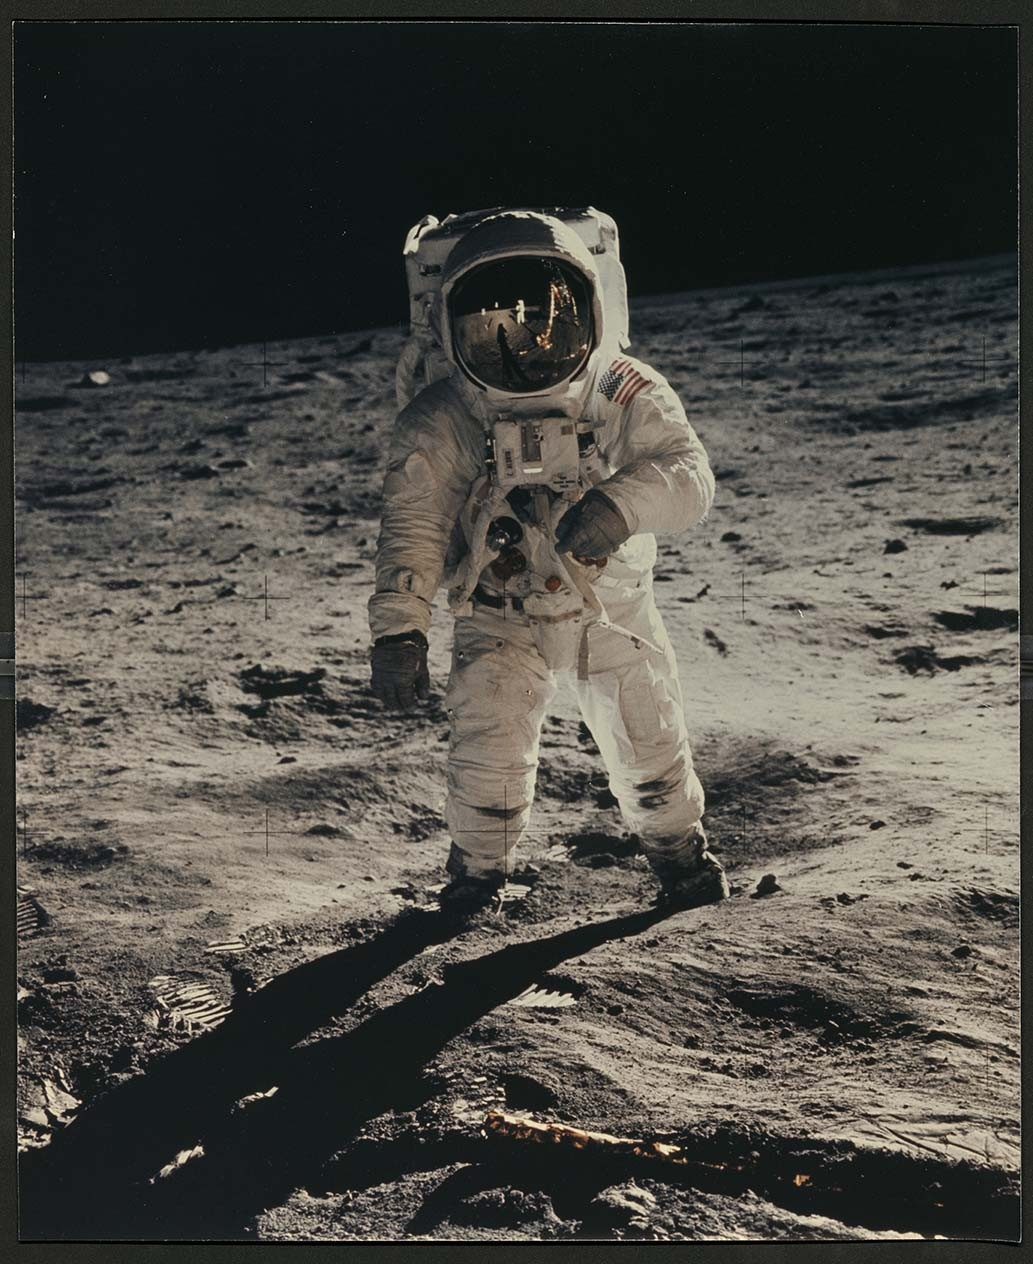 Photograph of Buzz Aldrin From the First Manned Lunar Landing, from the APS Library